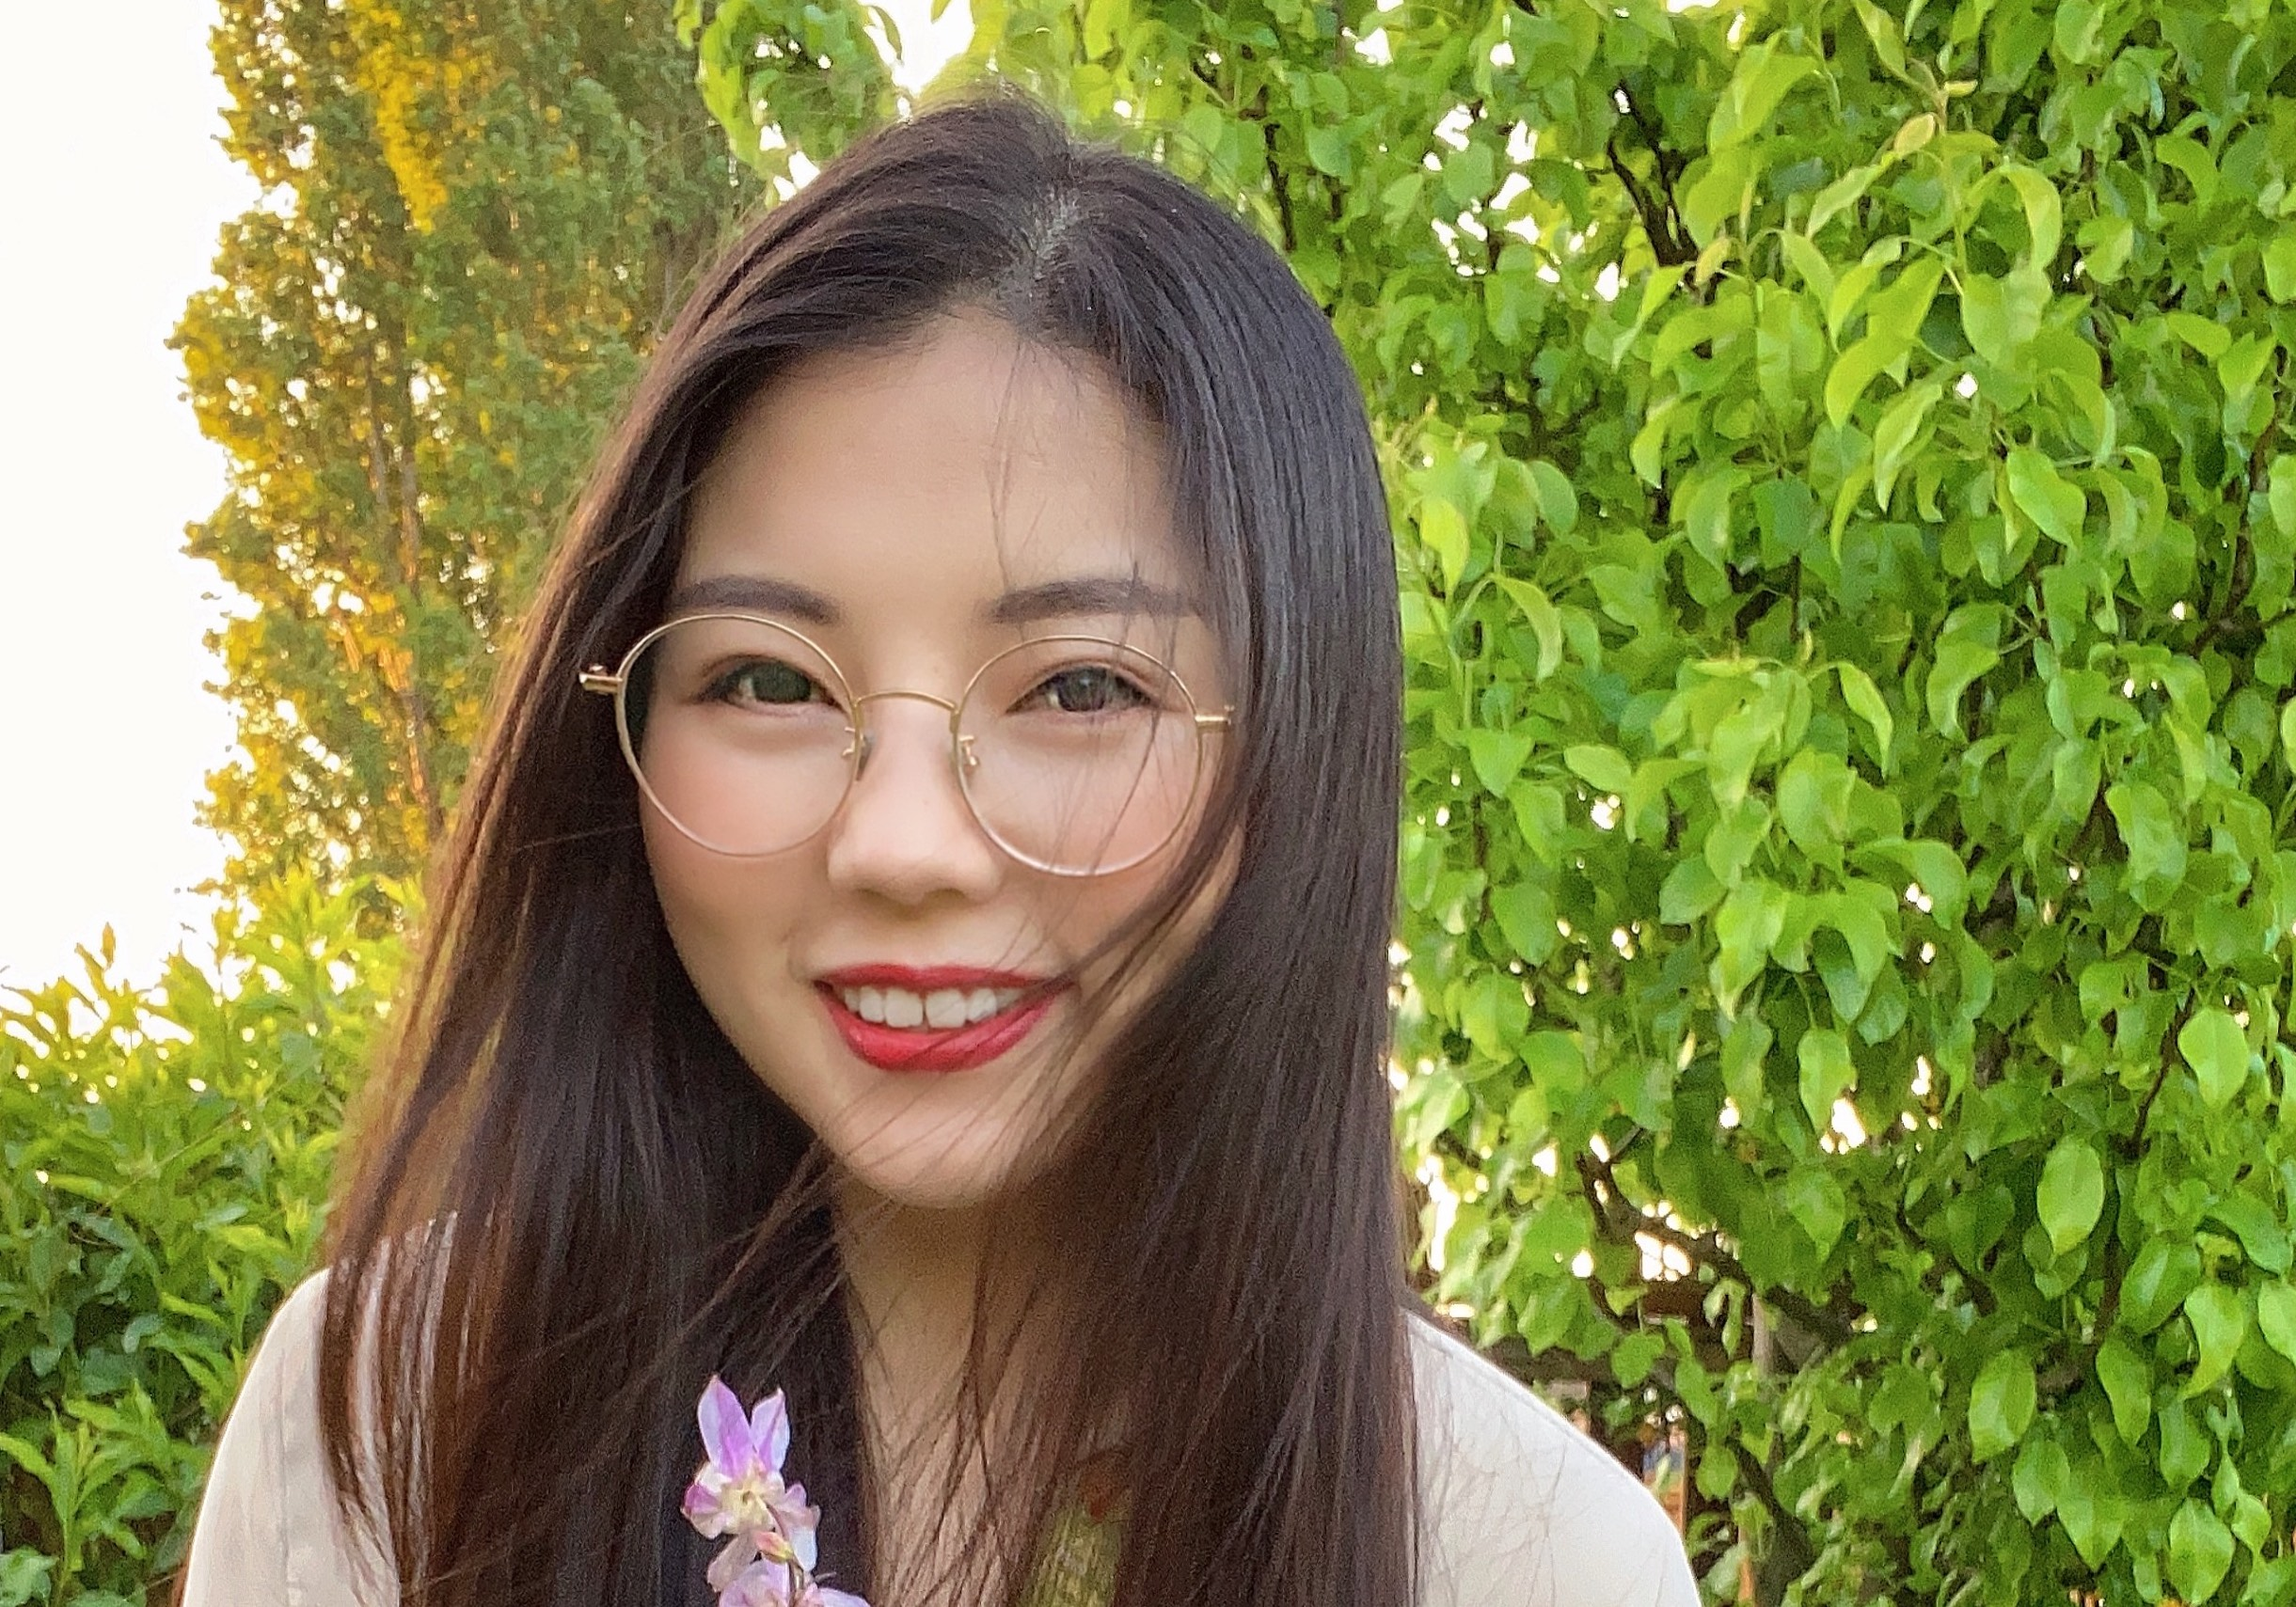 Nana Wei joins the group to pursue a PhD